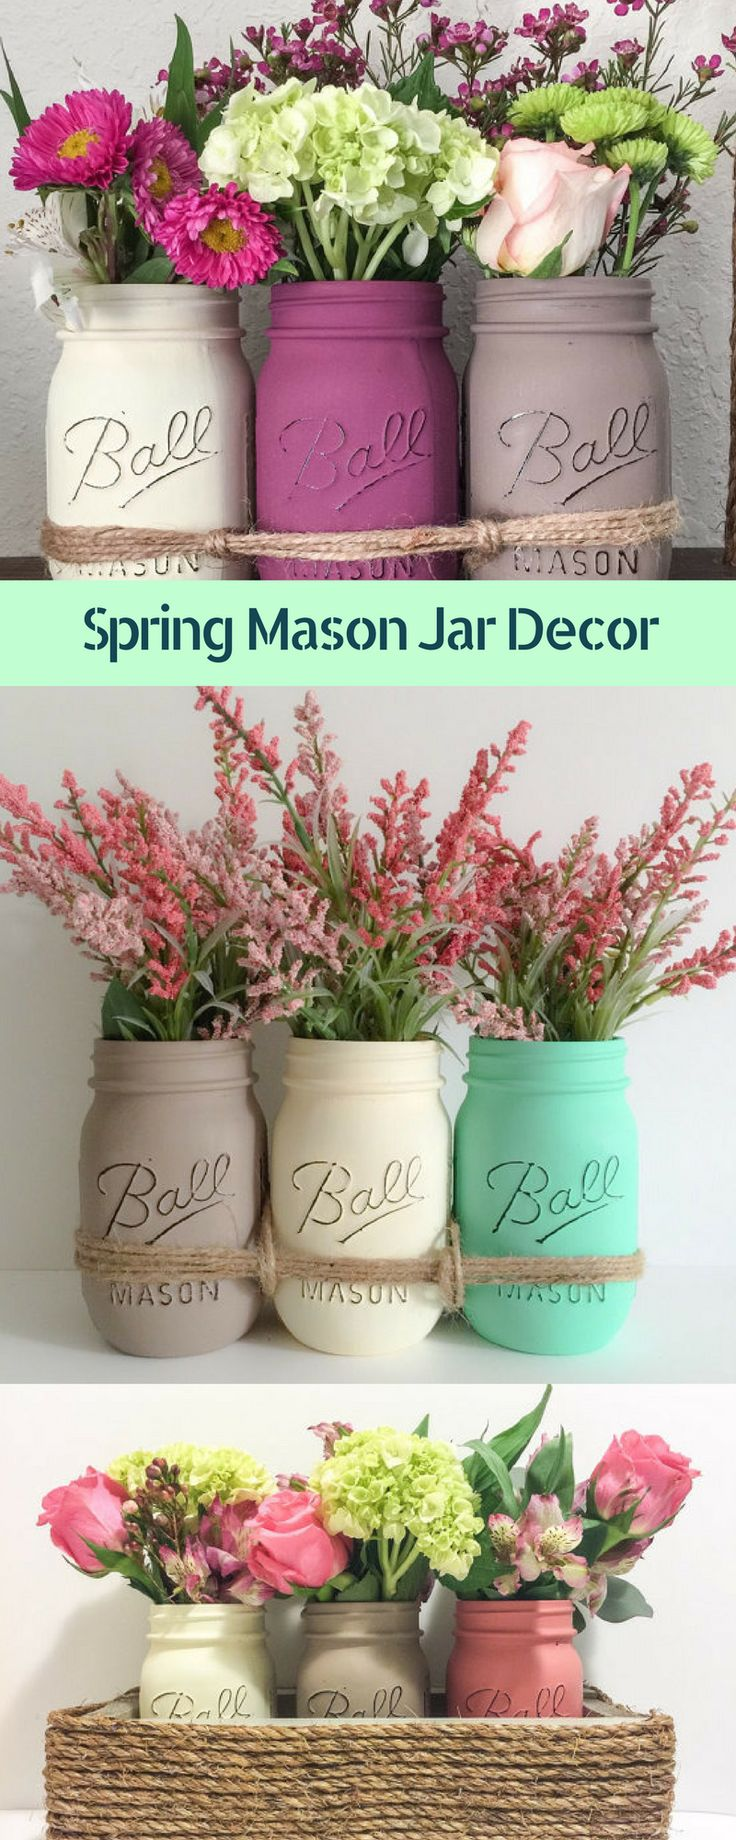 Gorgeous hand Painted and distressed mason jar decor just in time for spring! Add to any table or planter to make an eye candy centerpiece. #ad #masonjardecor #farmhousedecor #rusticdecor #springdecor #homedecor